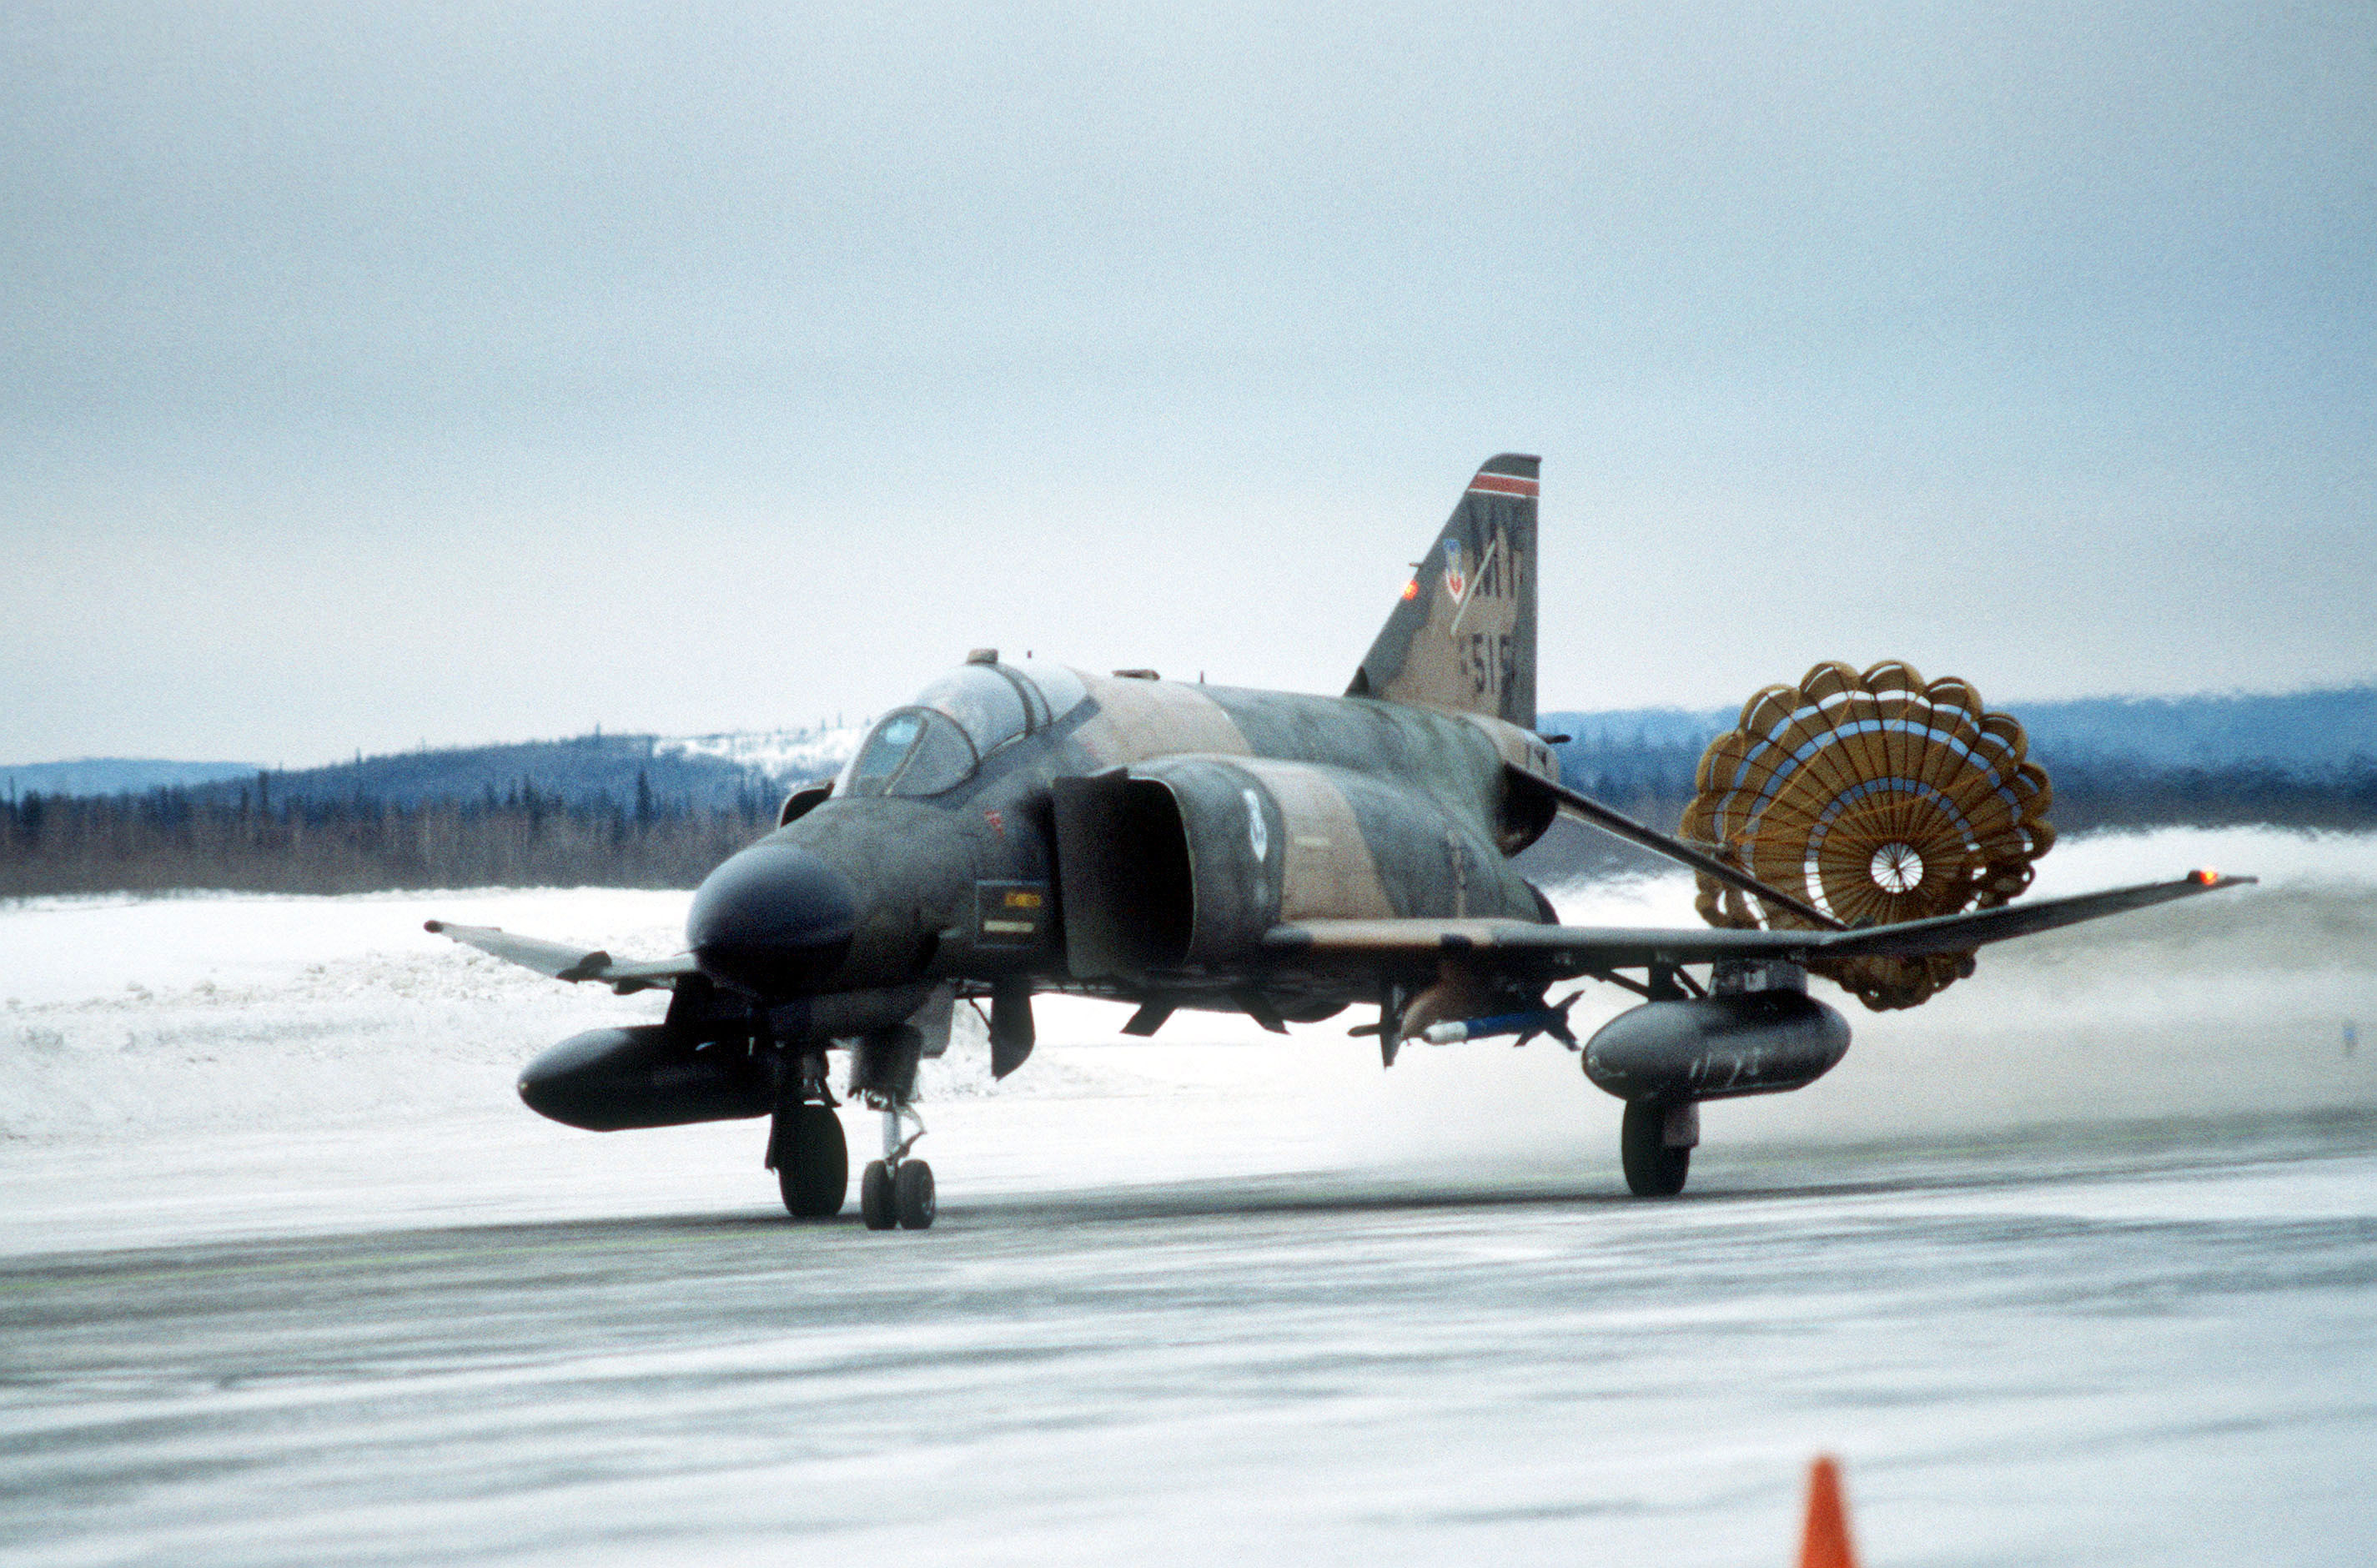 File:F-4 Phantom land with parachute.JPEG - Wikimedia Commons